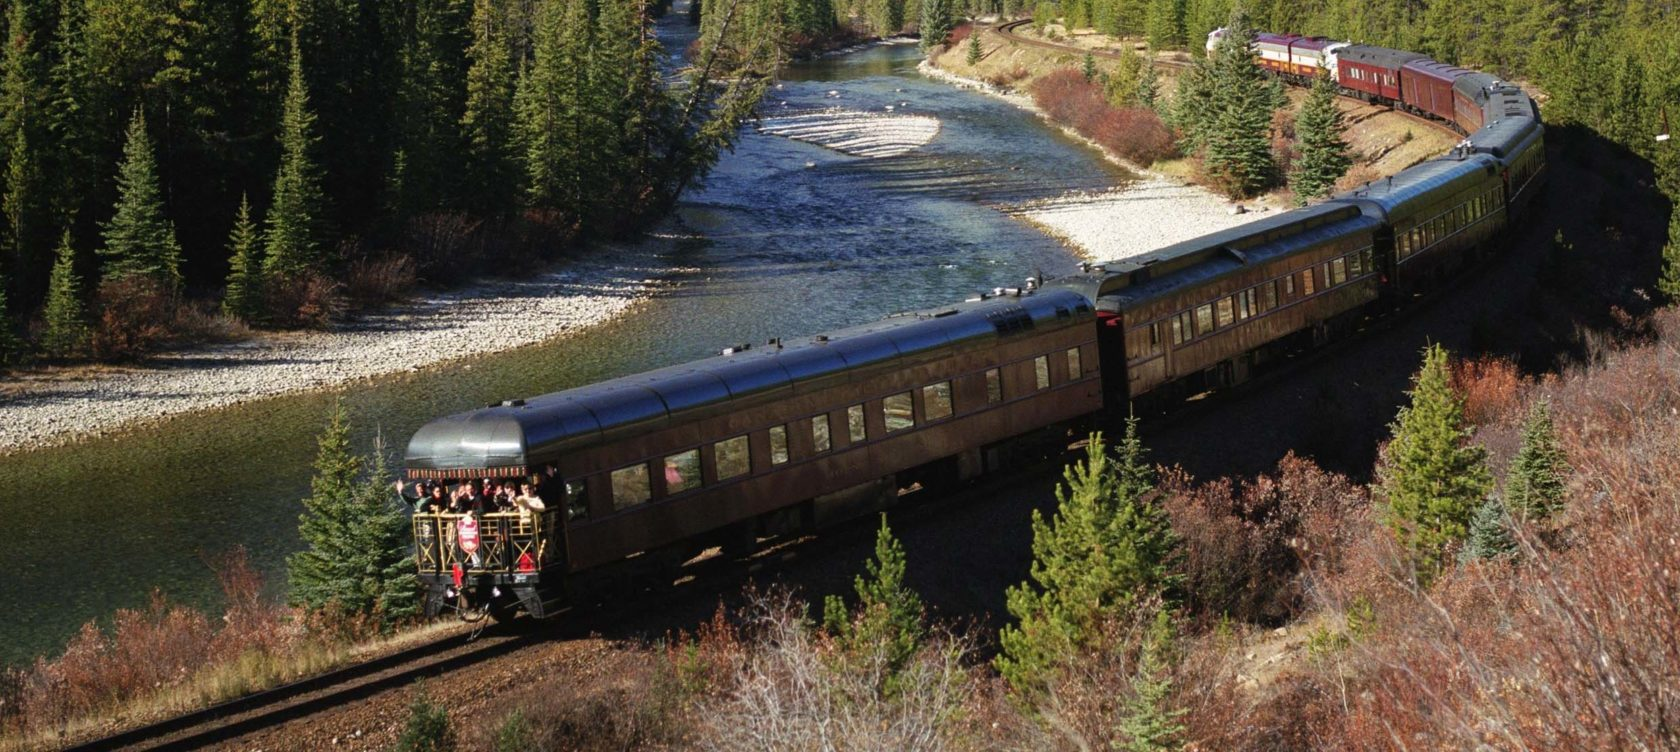 A train moving alongside a river and a forest.